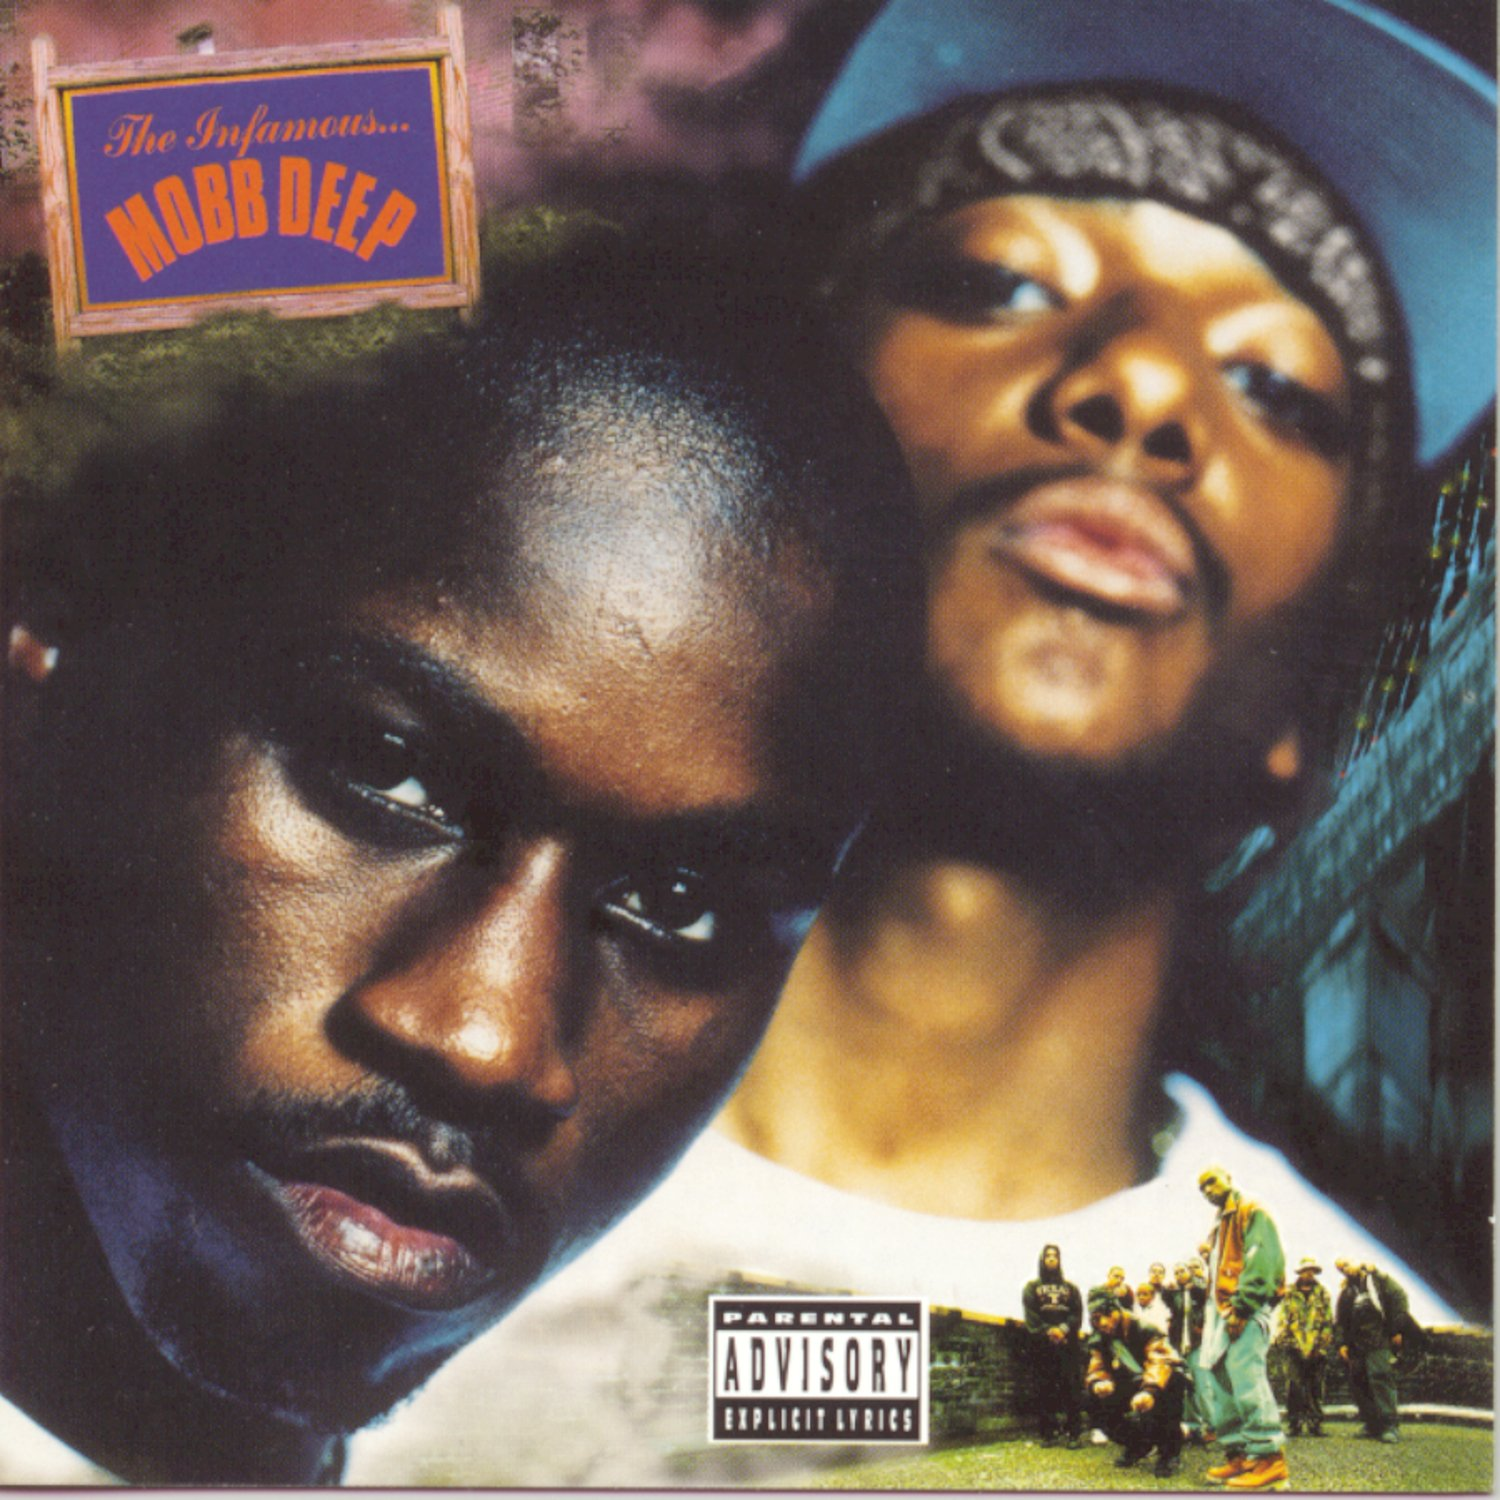 Today In Hip Hop History: Mobb Deep's 'The Infamous' LP Released 24 Years Ago